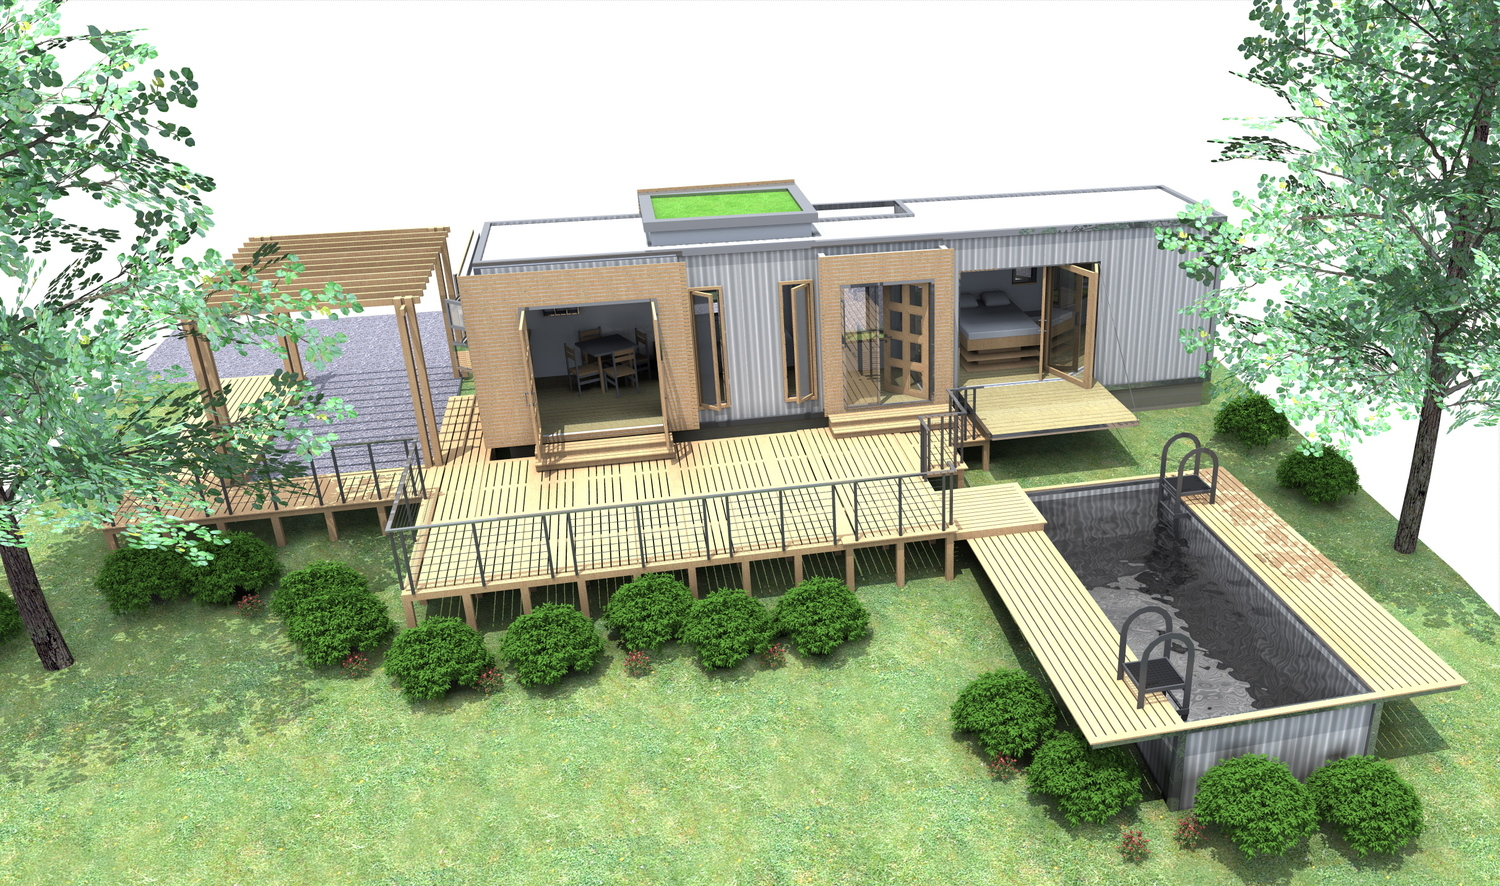 Shipping container homes 40ft shipping container home - Shipping container homes designs ...